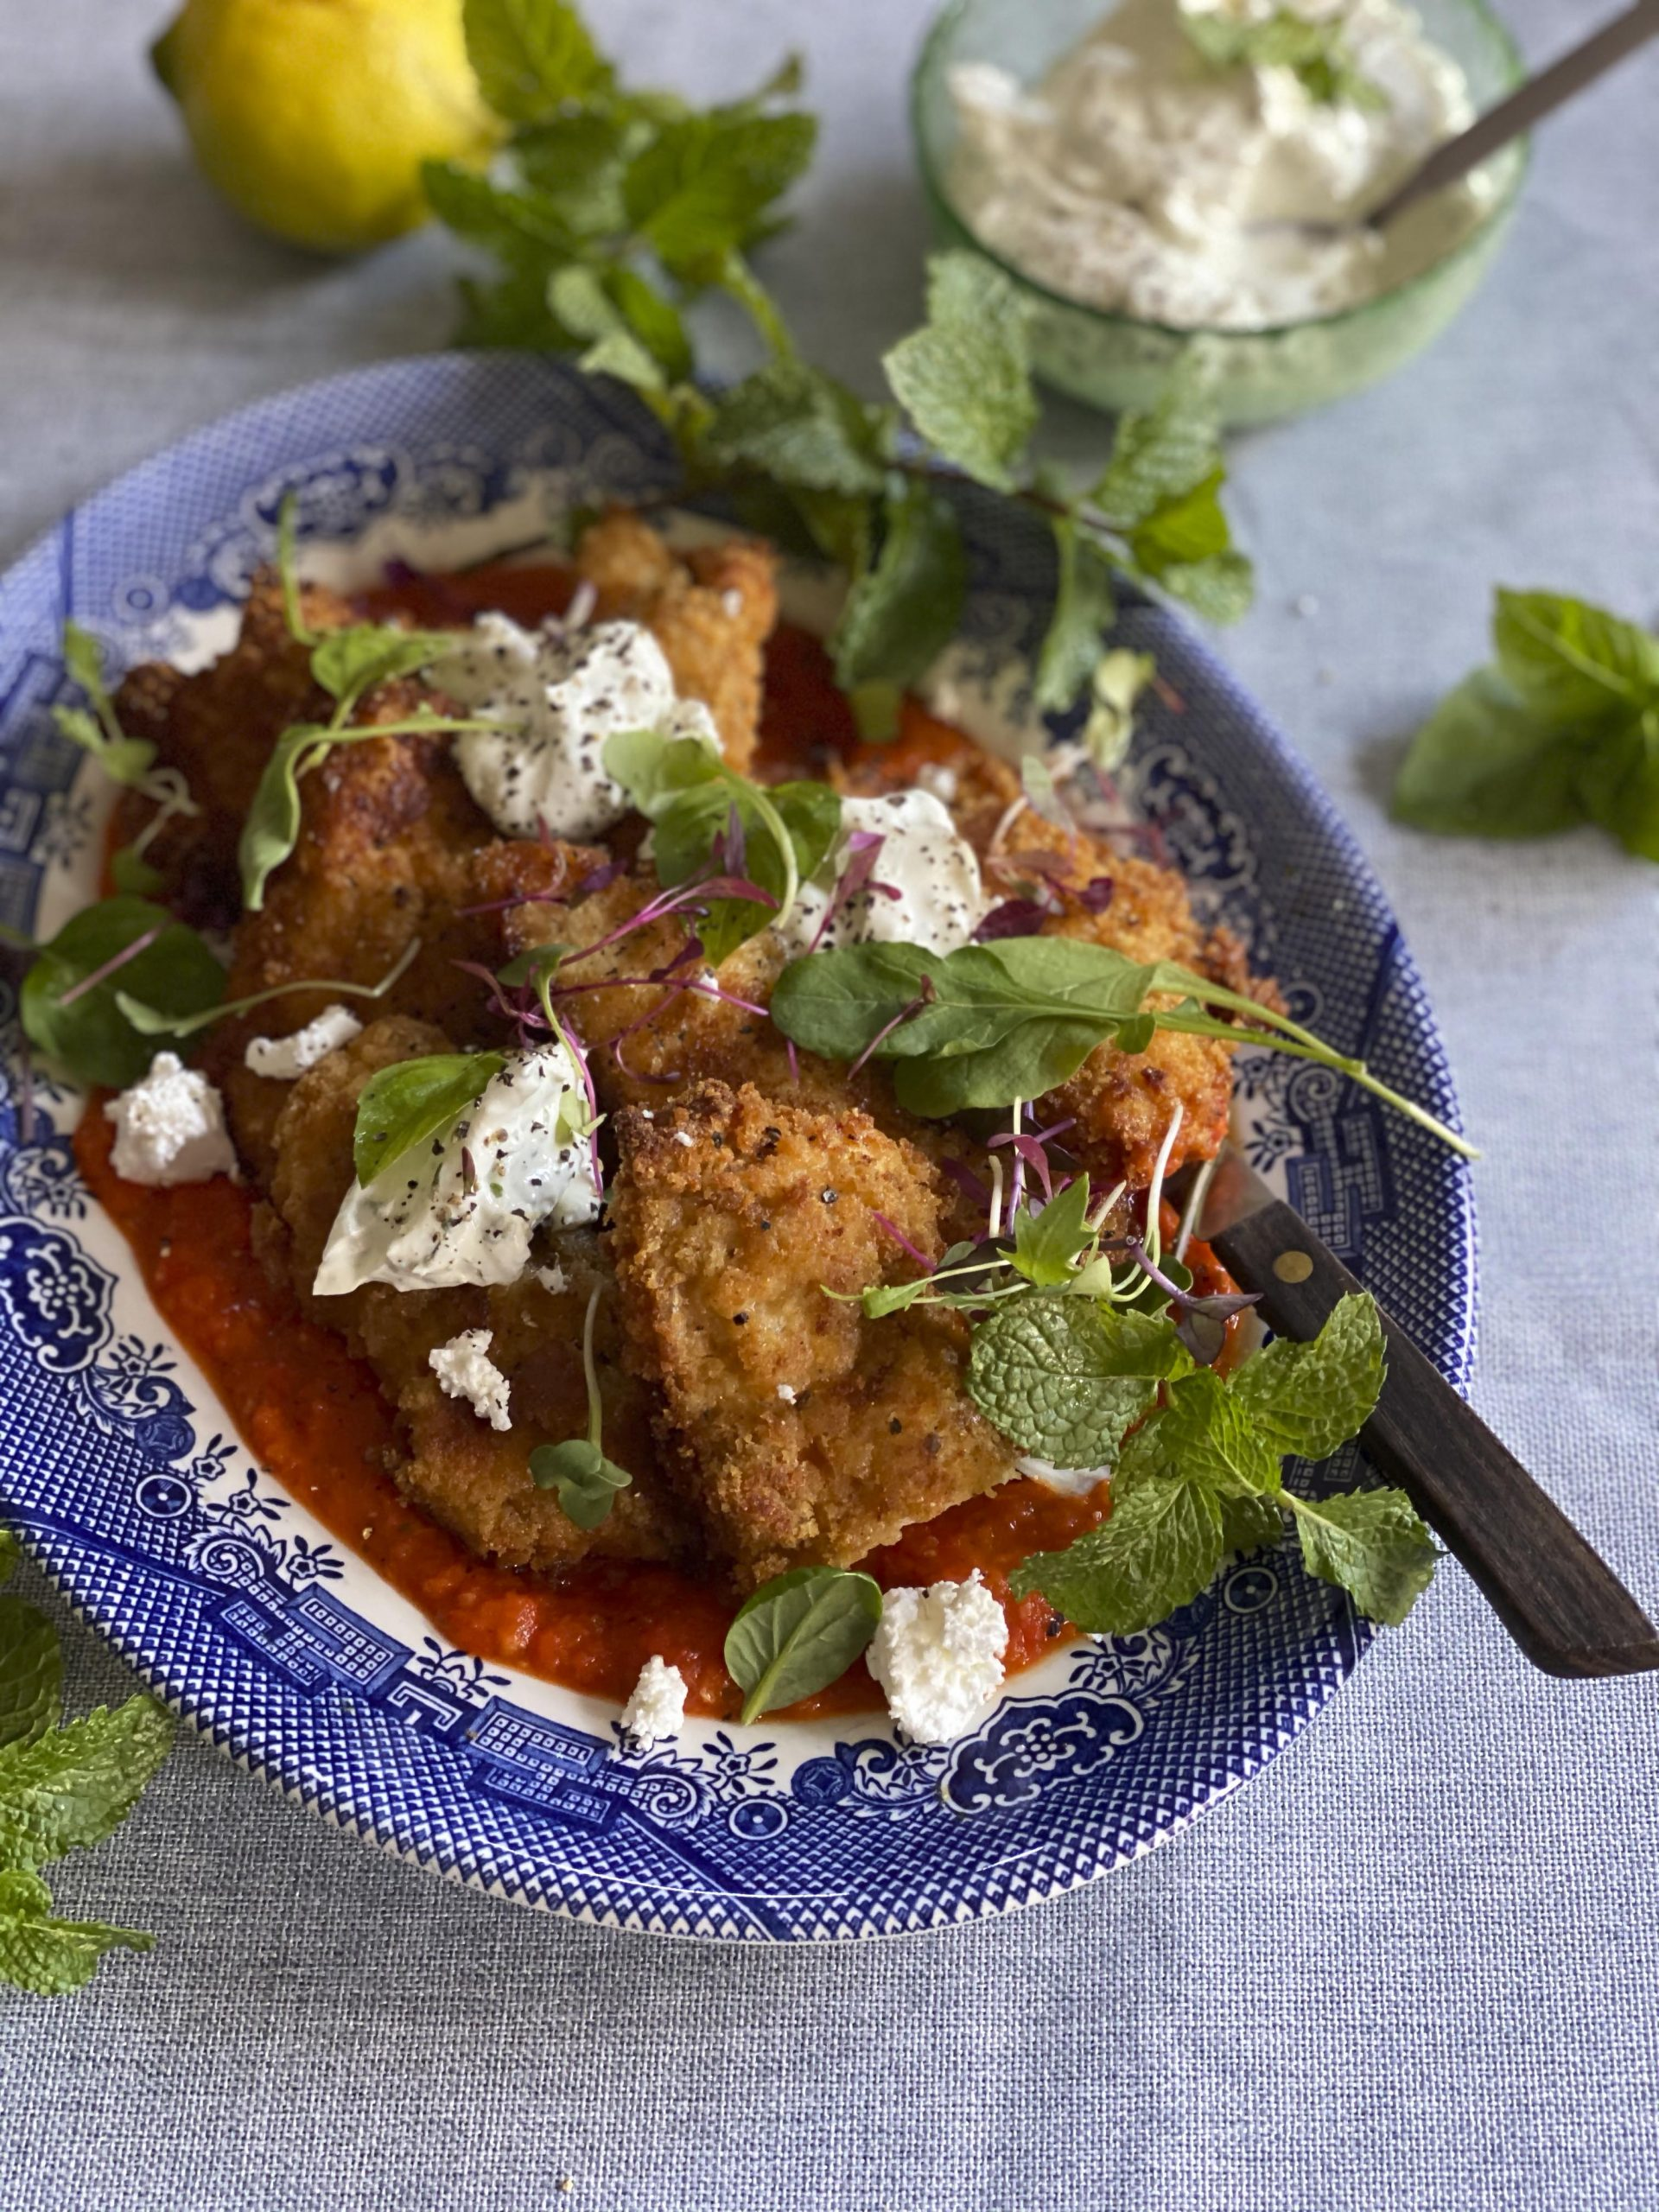 Crumbed Chicken with Whipped Feta